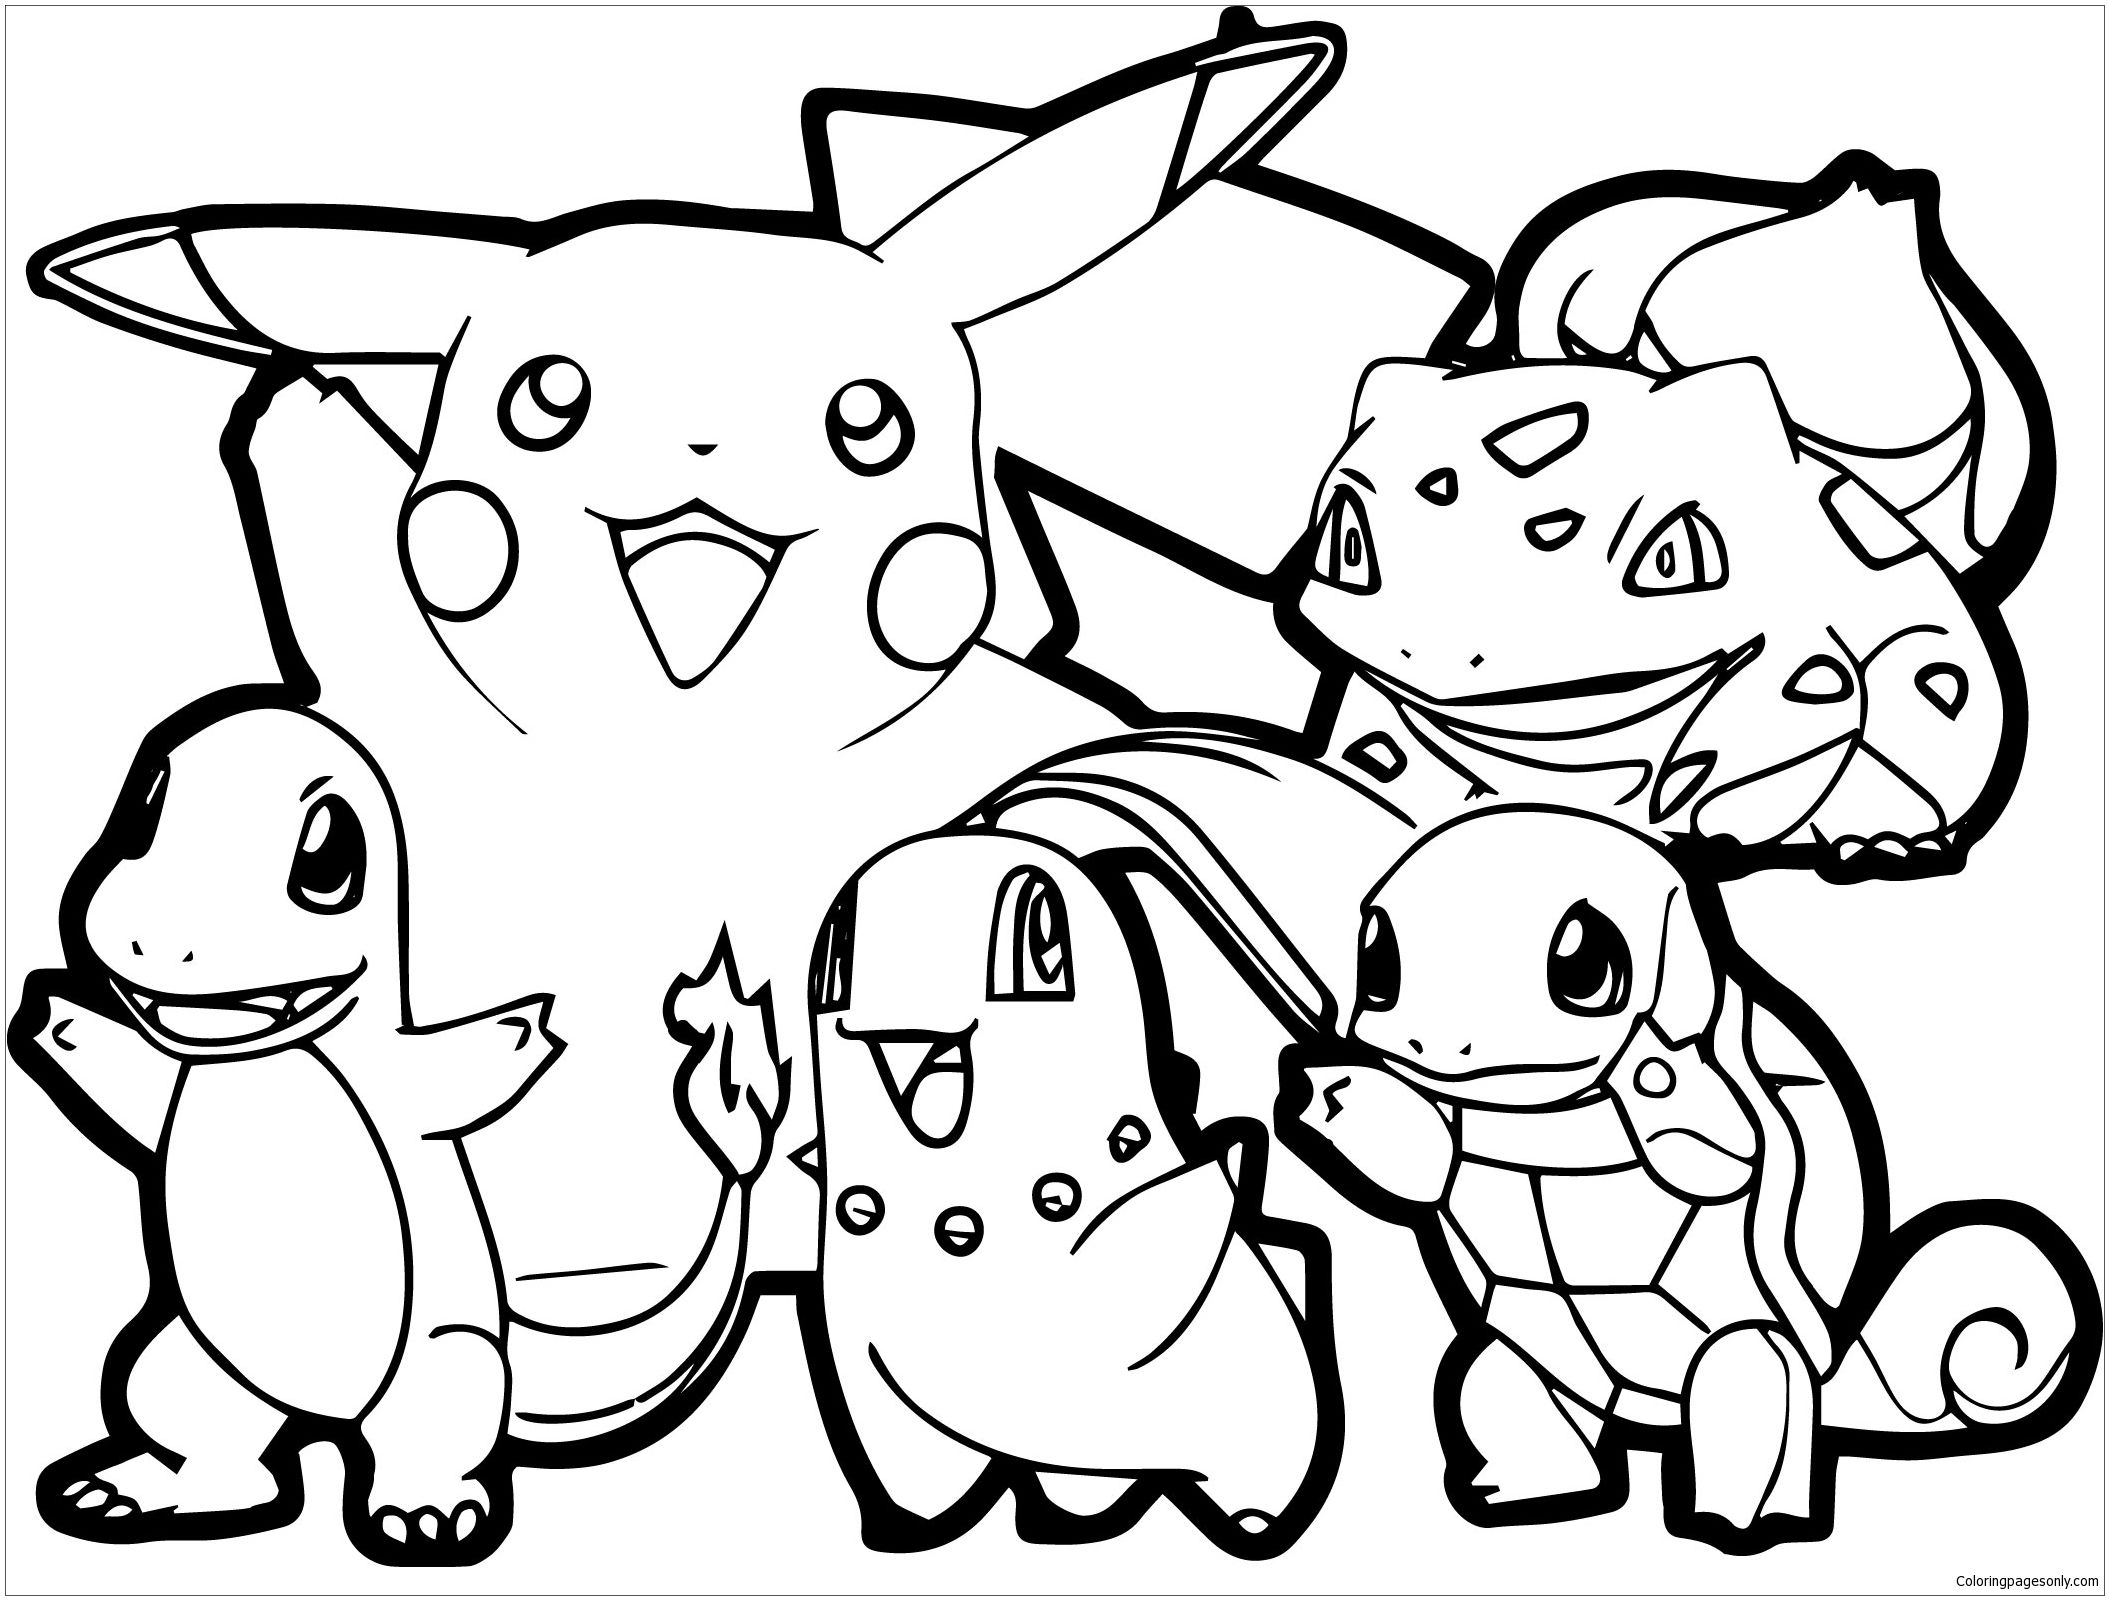 Adult Pokemon Coloring Page: http://coloringpagesonly.com/pages ...